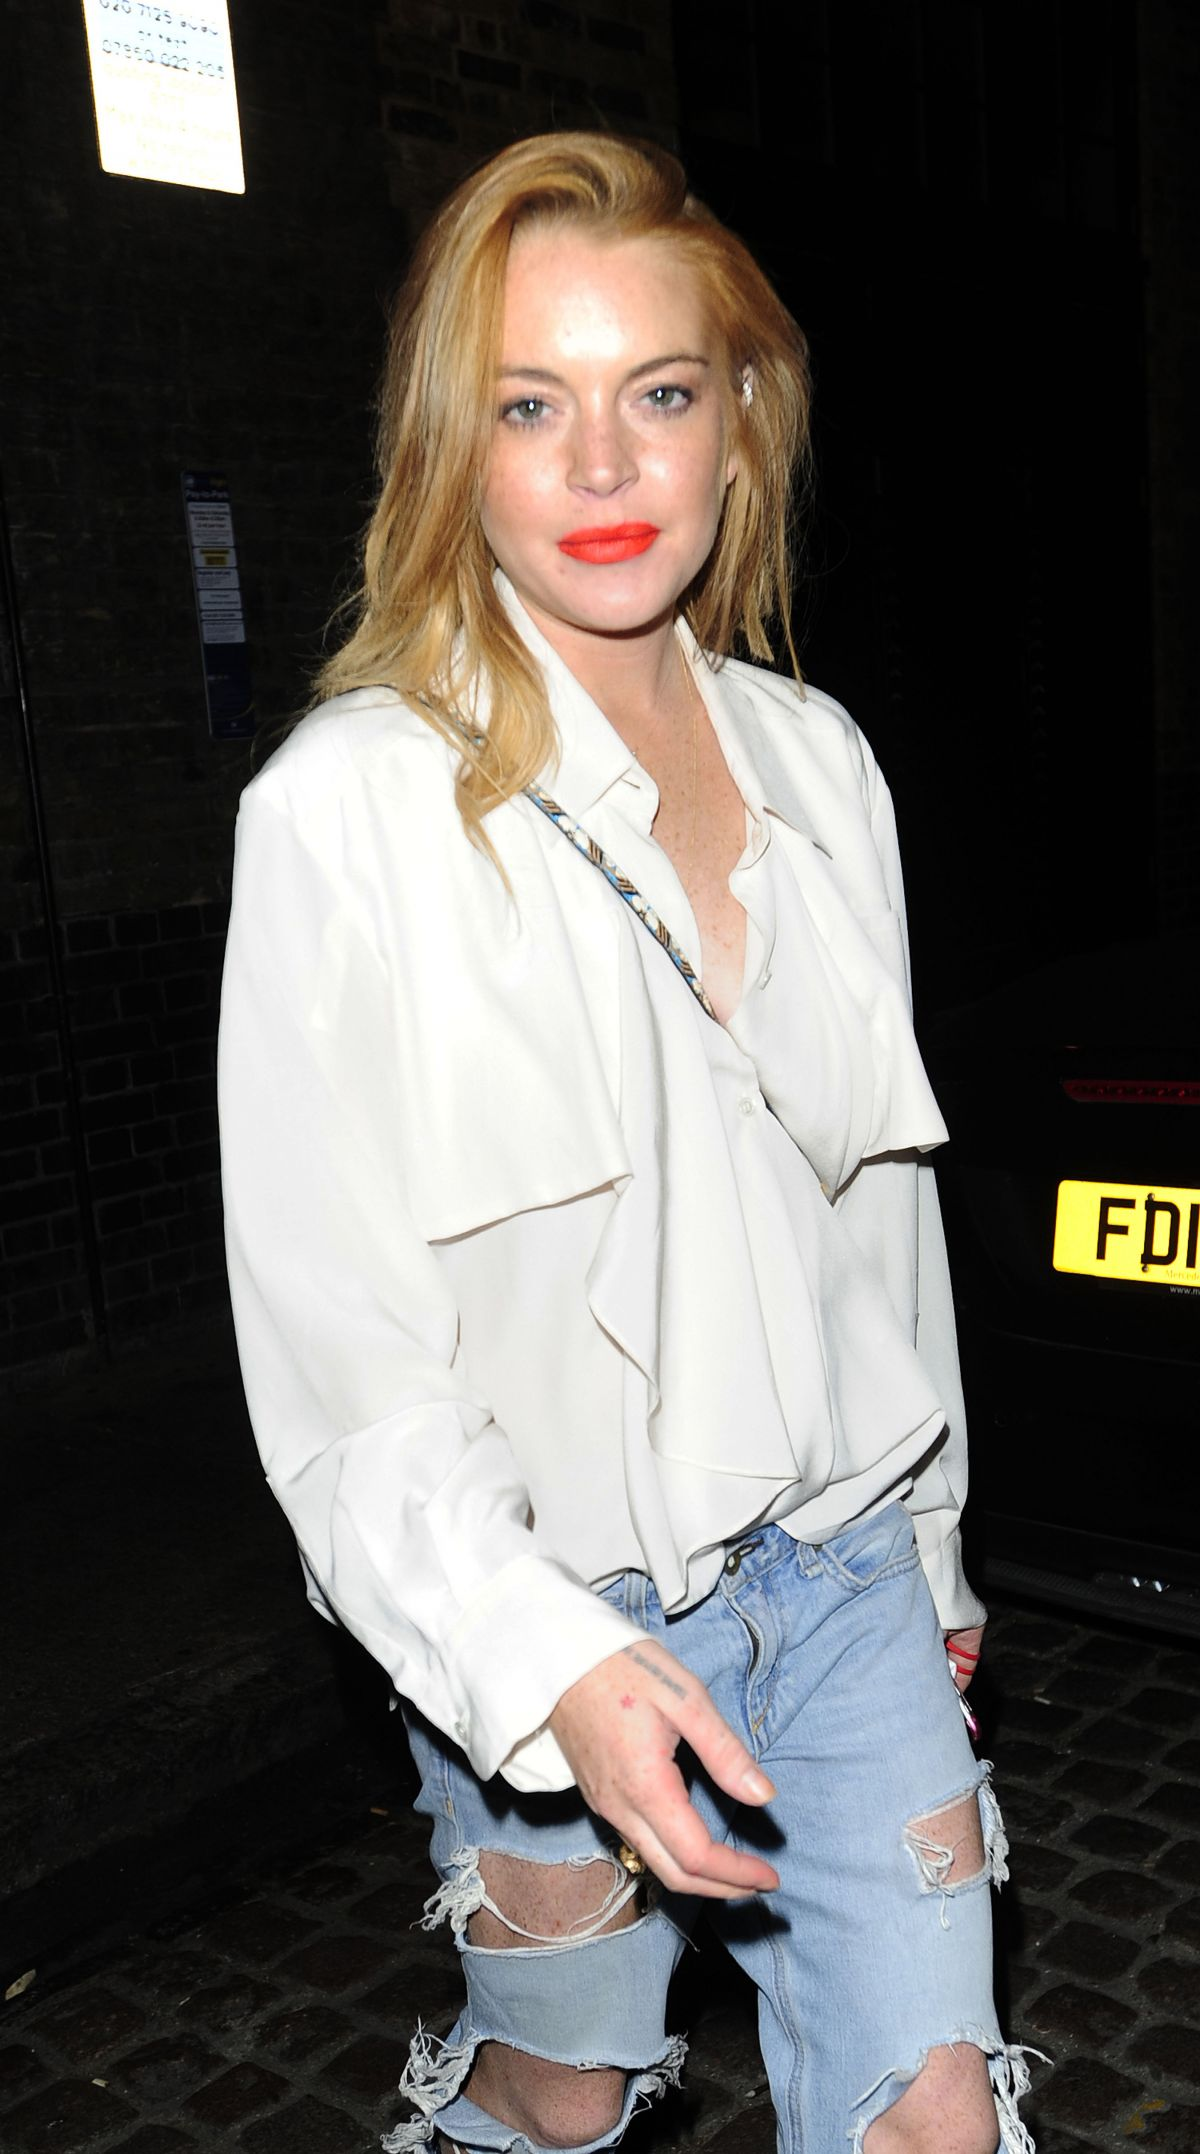 LINDSAY LOHAN at Chiltern Firehouse in London 08/10/2015 - HawtCelebs ...